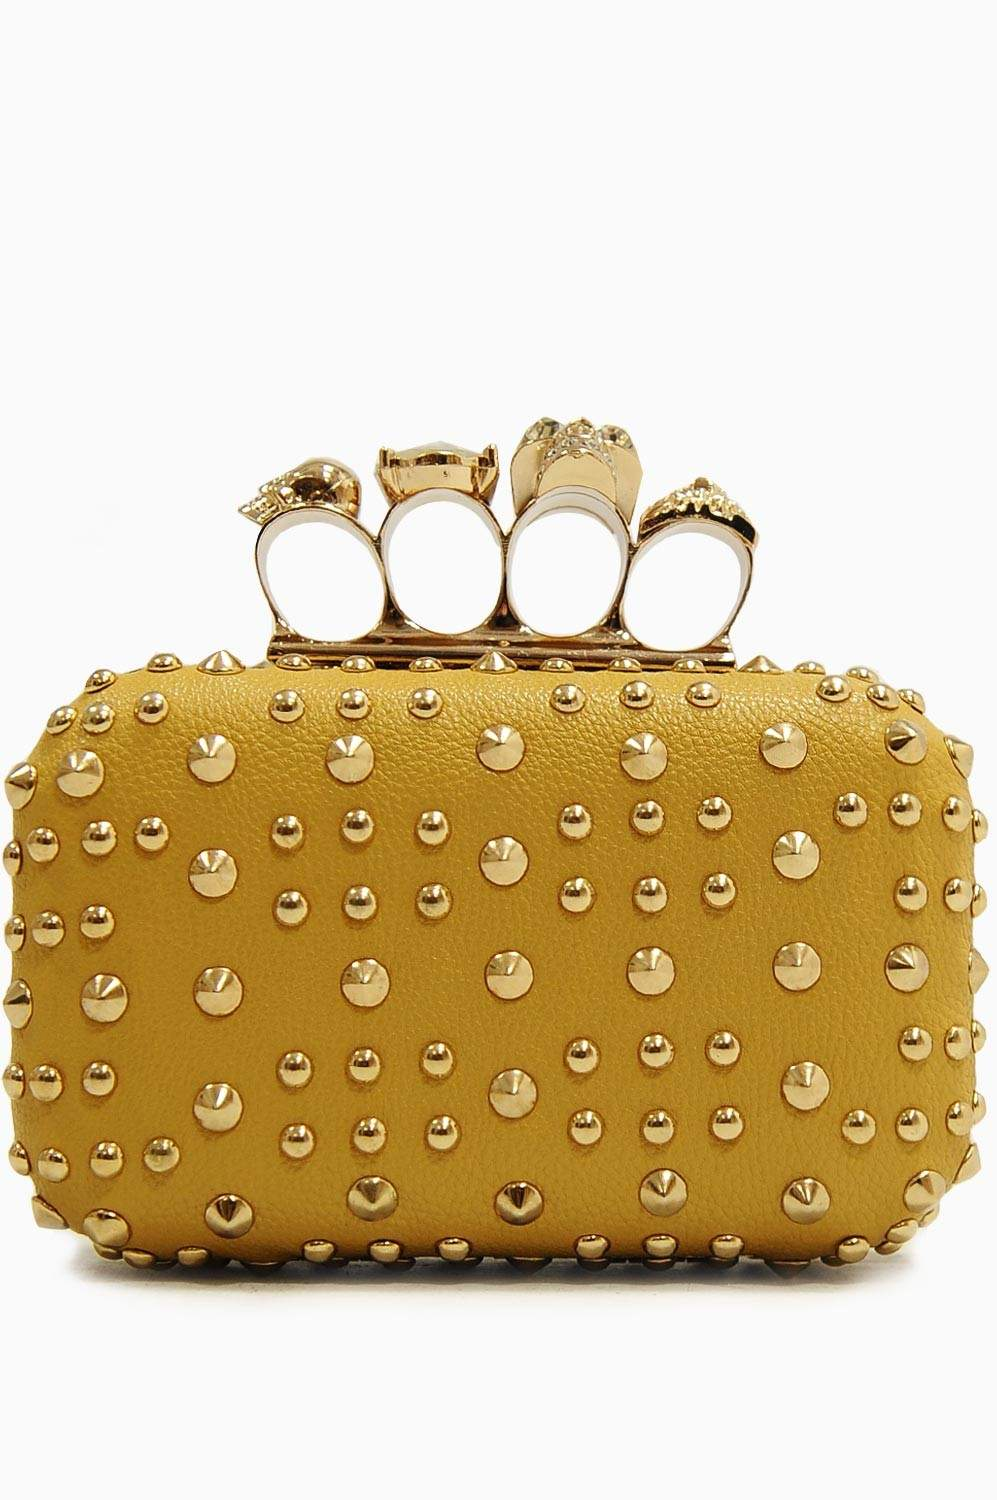 Tiffany Beige Skull Knuckle Ring Clutch Bag